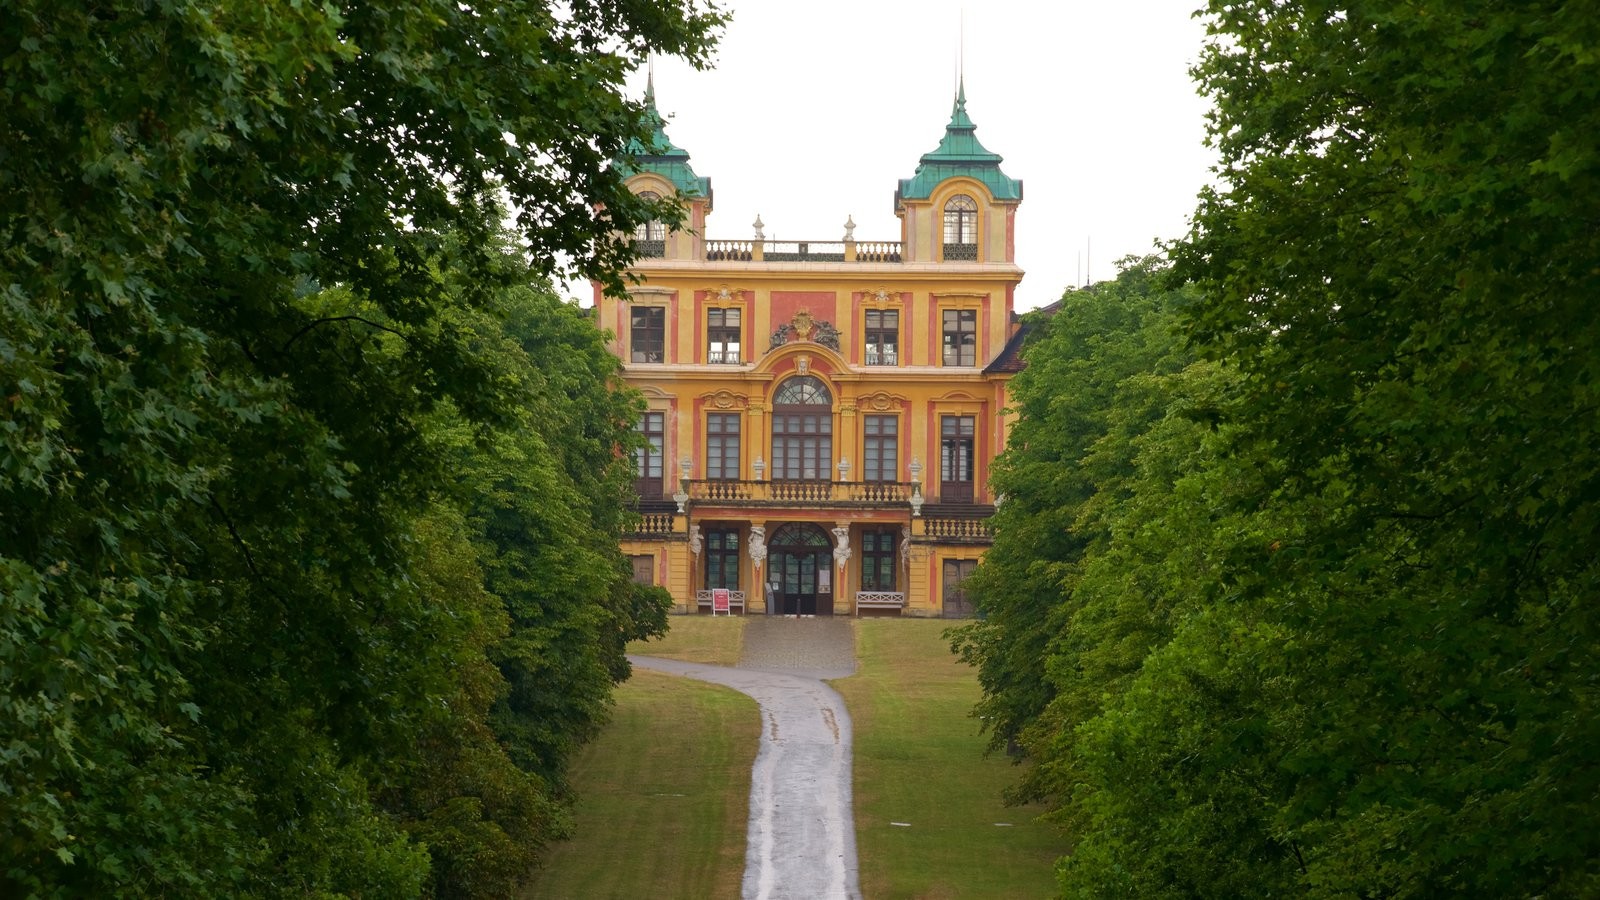 Stuttgart Ludwigsburg Castles Palaces Pictures View Images Of Ludwigsburg